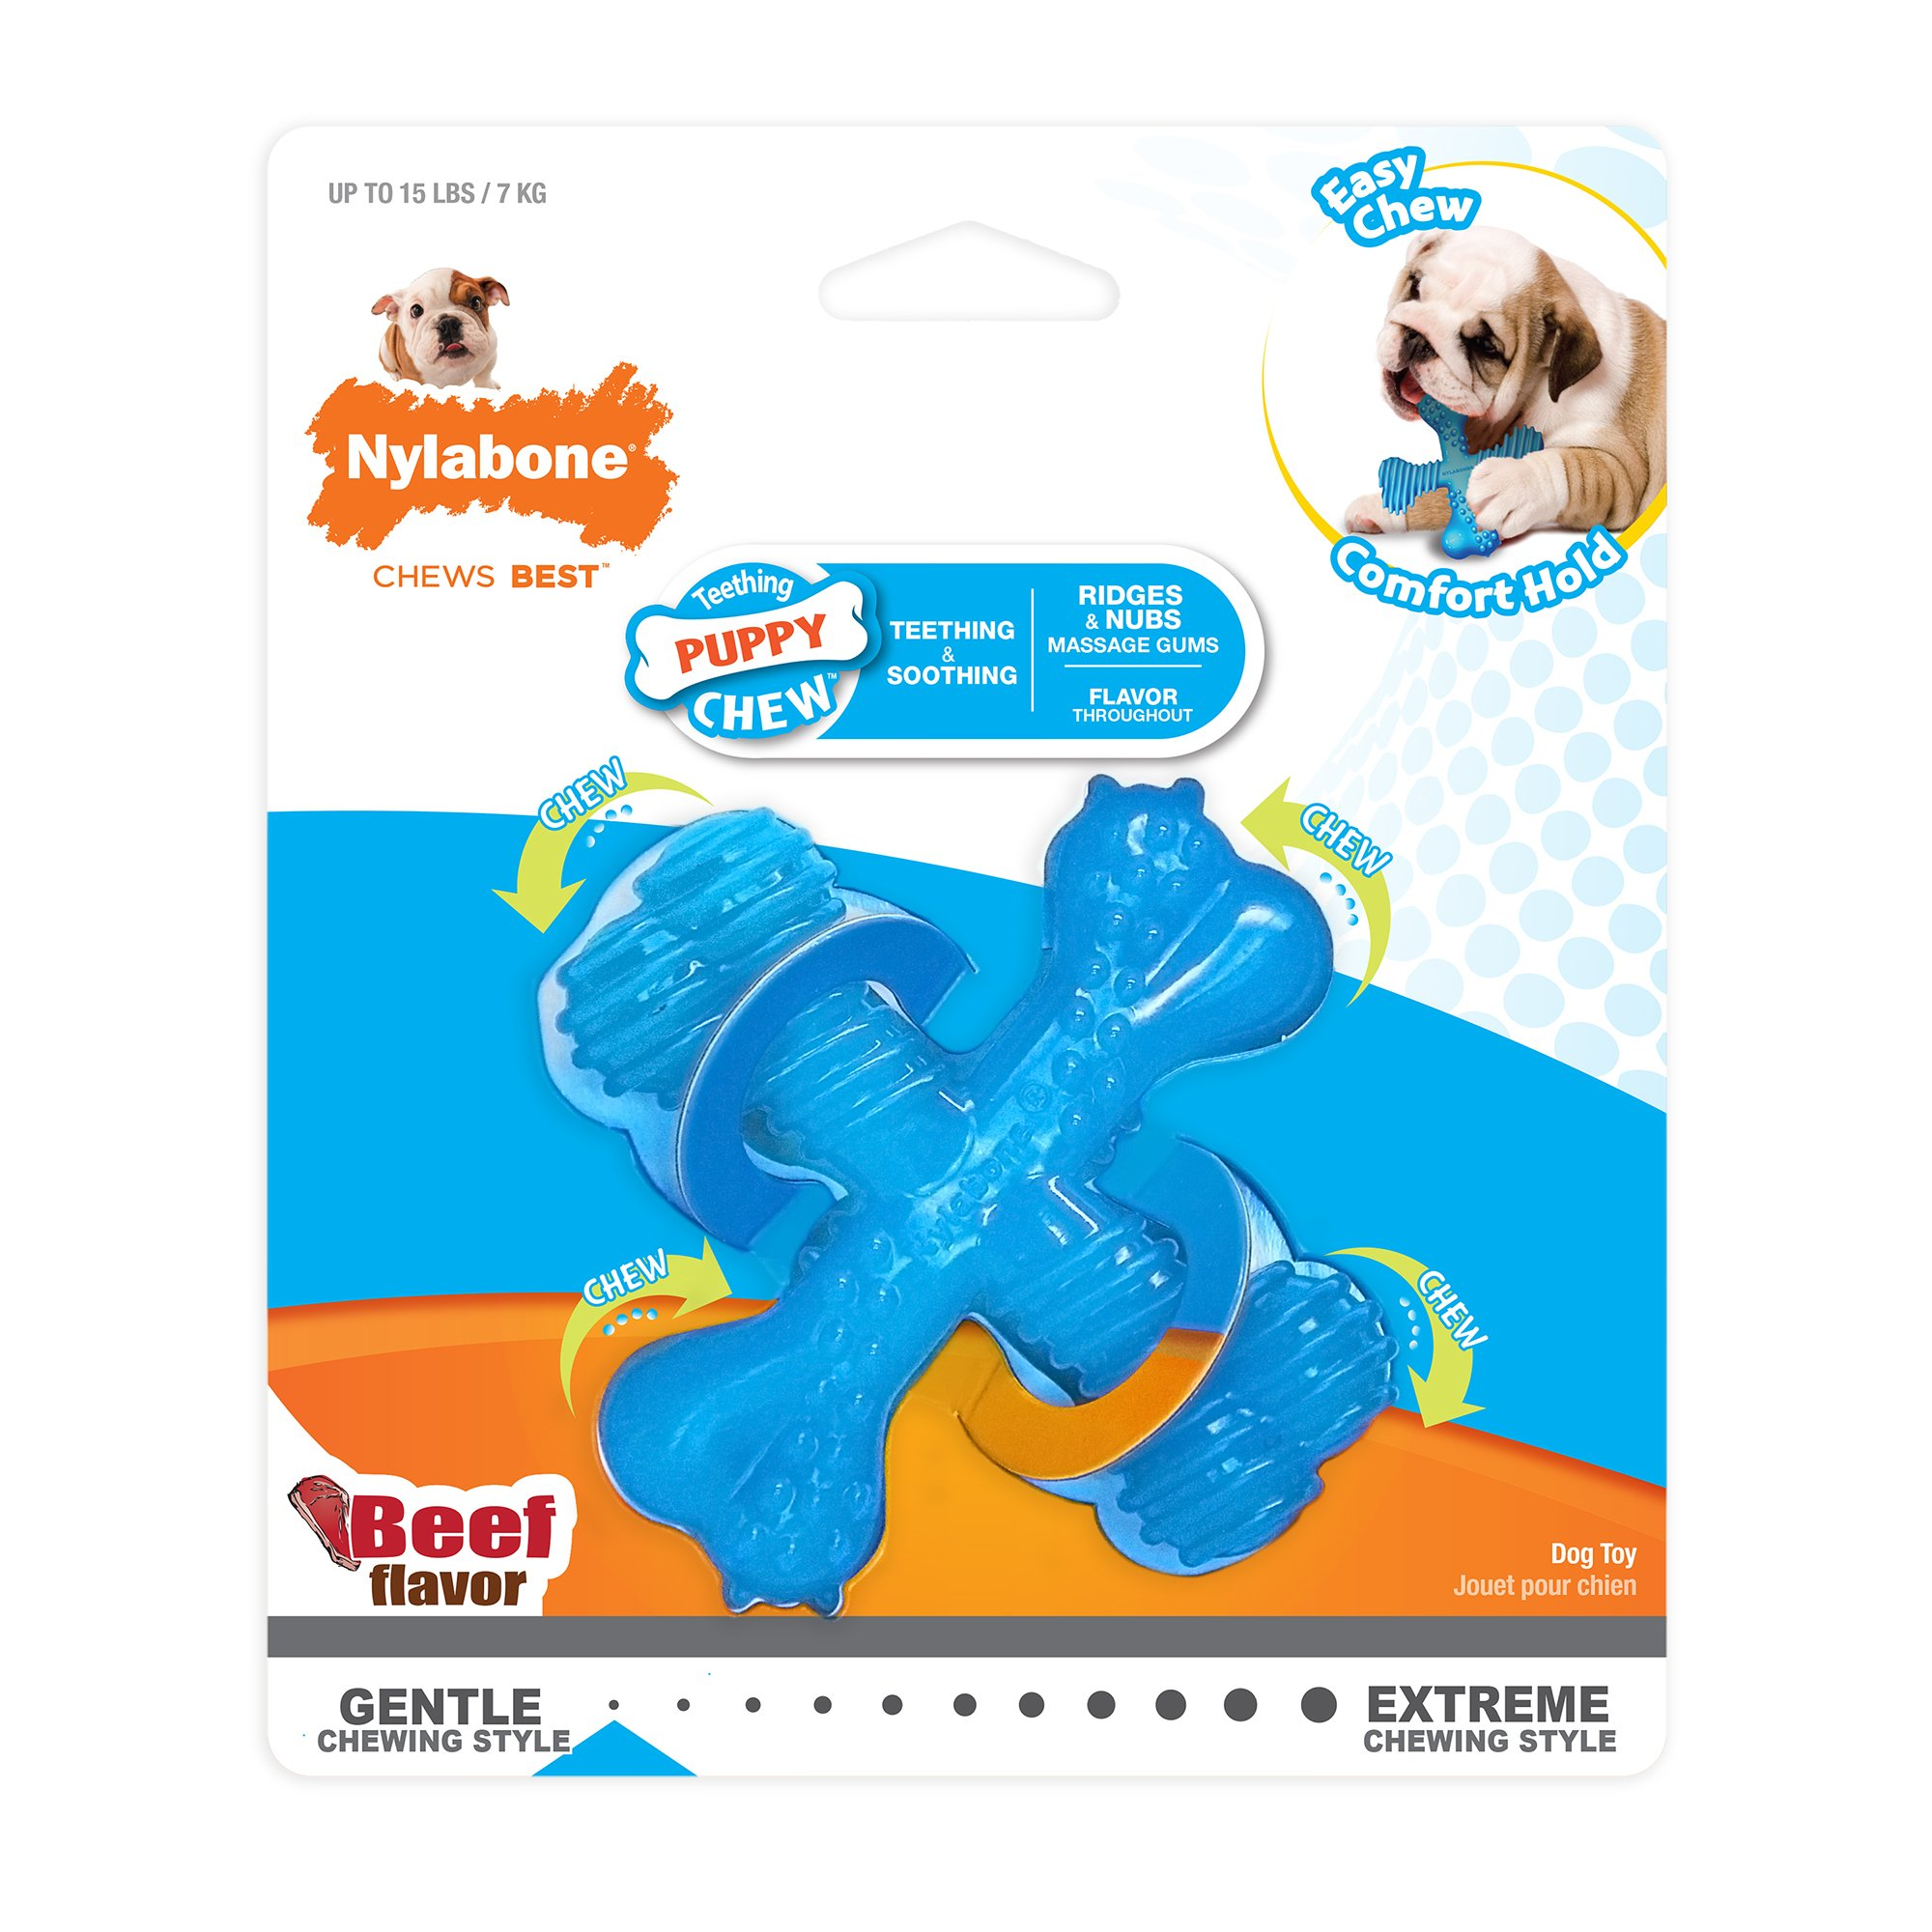 Nylabone Puppy Chew Gentle Chewing Puppy X Bone Small Beef Flavored Chew Toy, Small/Regular, Blue, Model:NPX200P